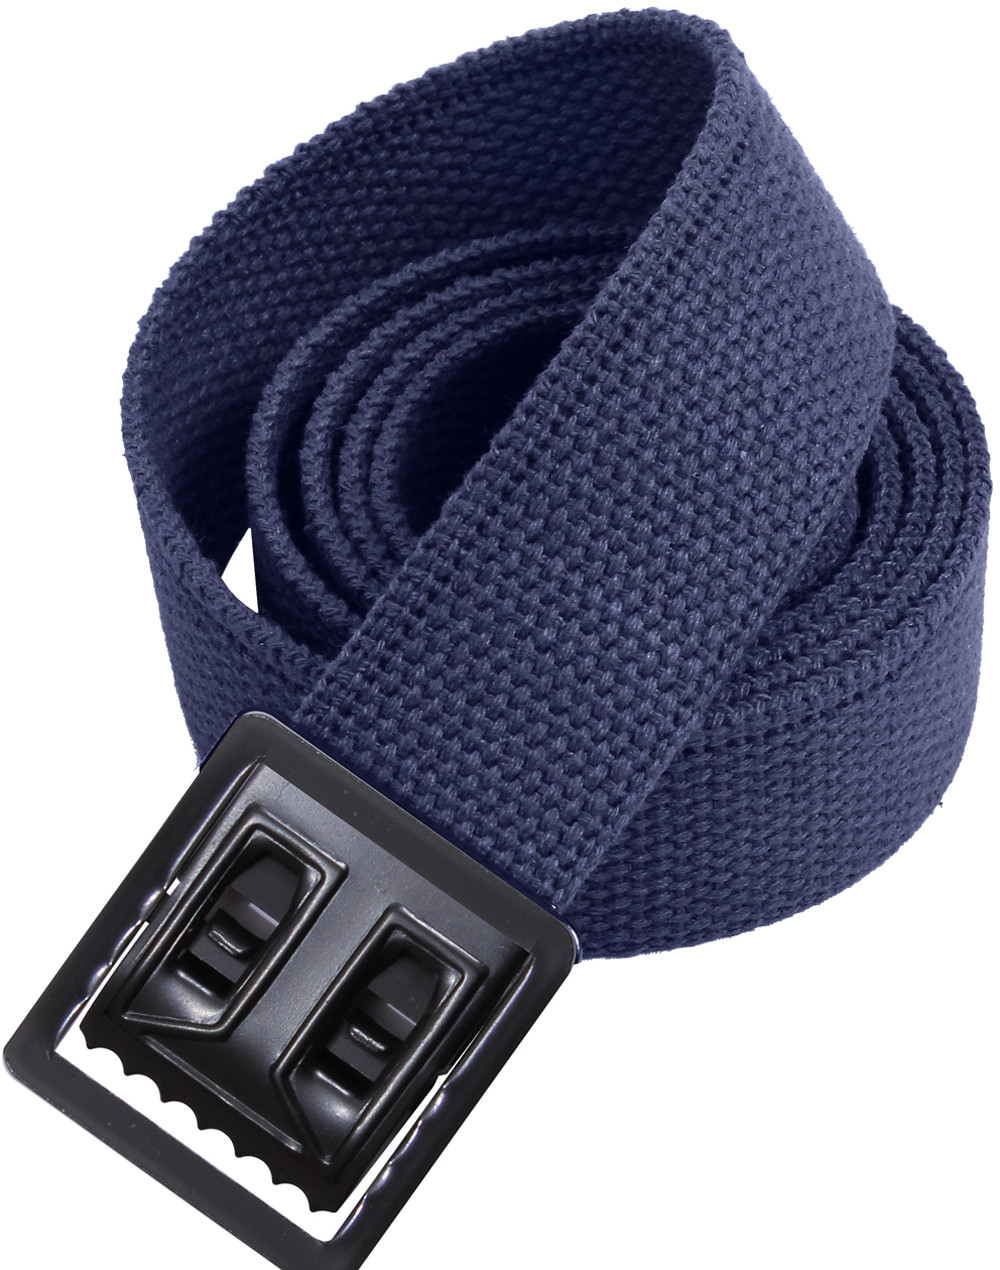 More Views. Navy Blue Military Cotton Web Belt   Black Open Face Buckle cbd71078838